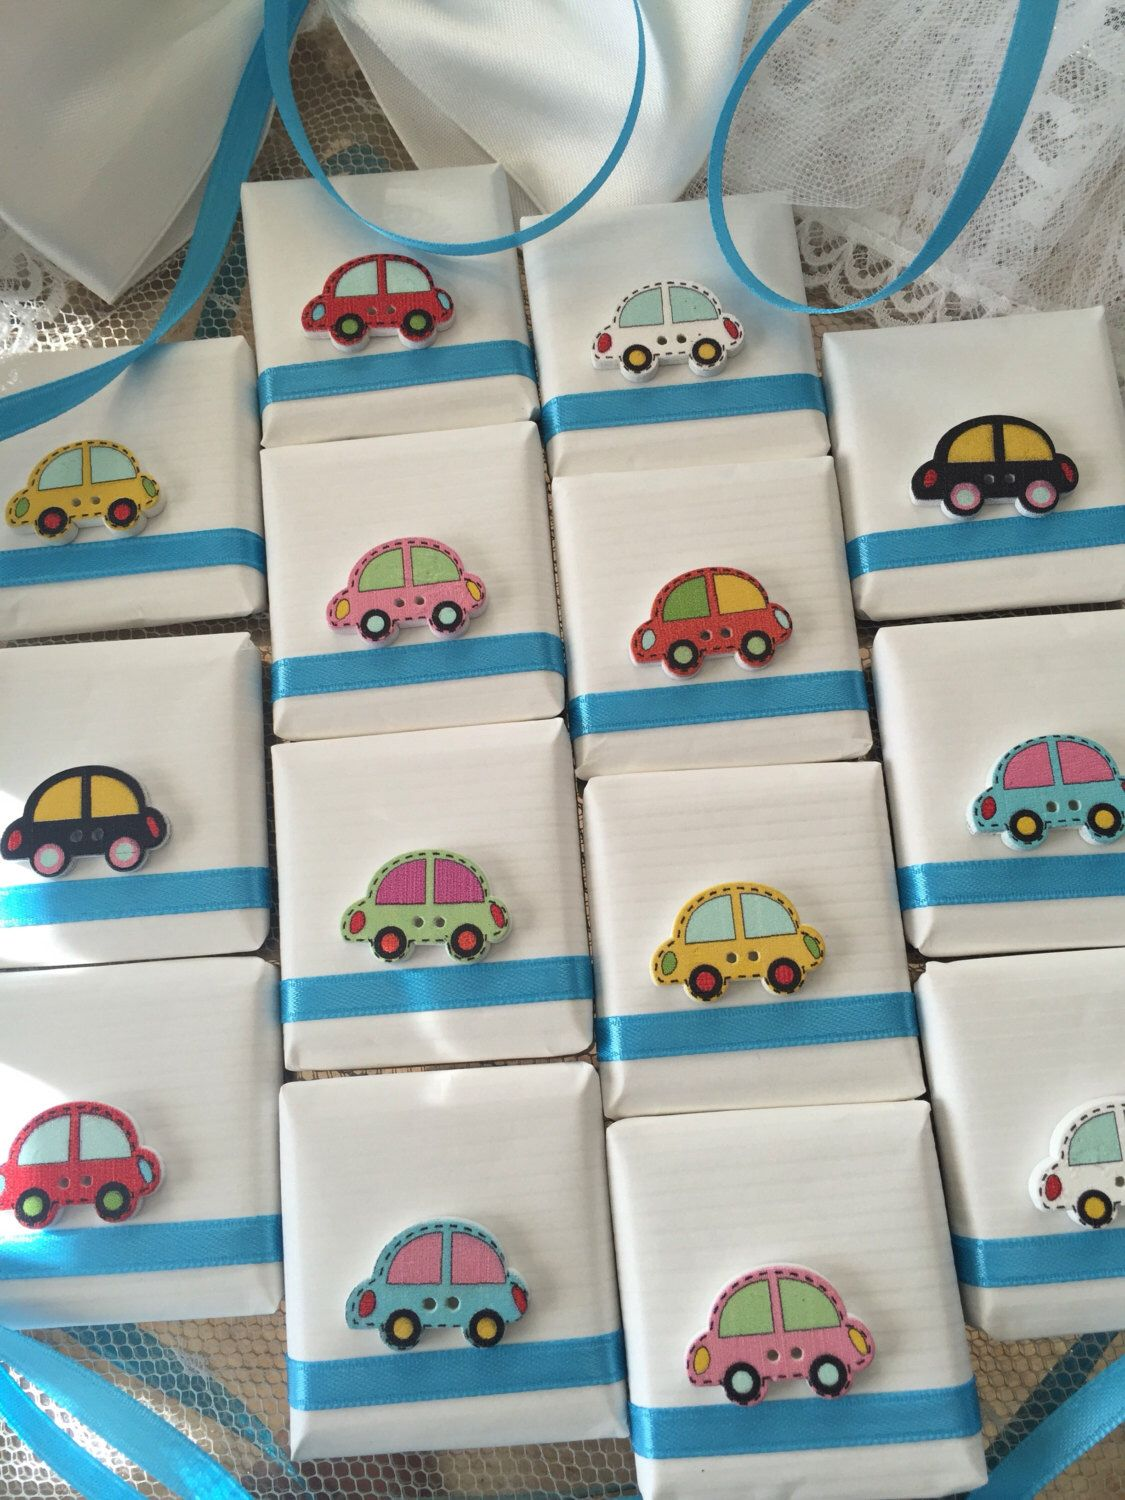 10 Baby Shower Favors Baby Boy Baby Girl Cars Favors Decorated